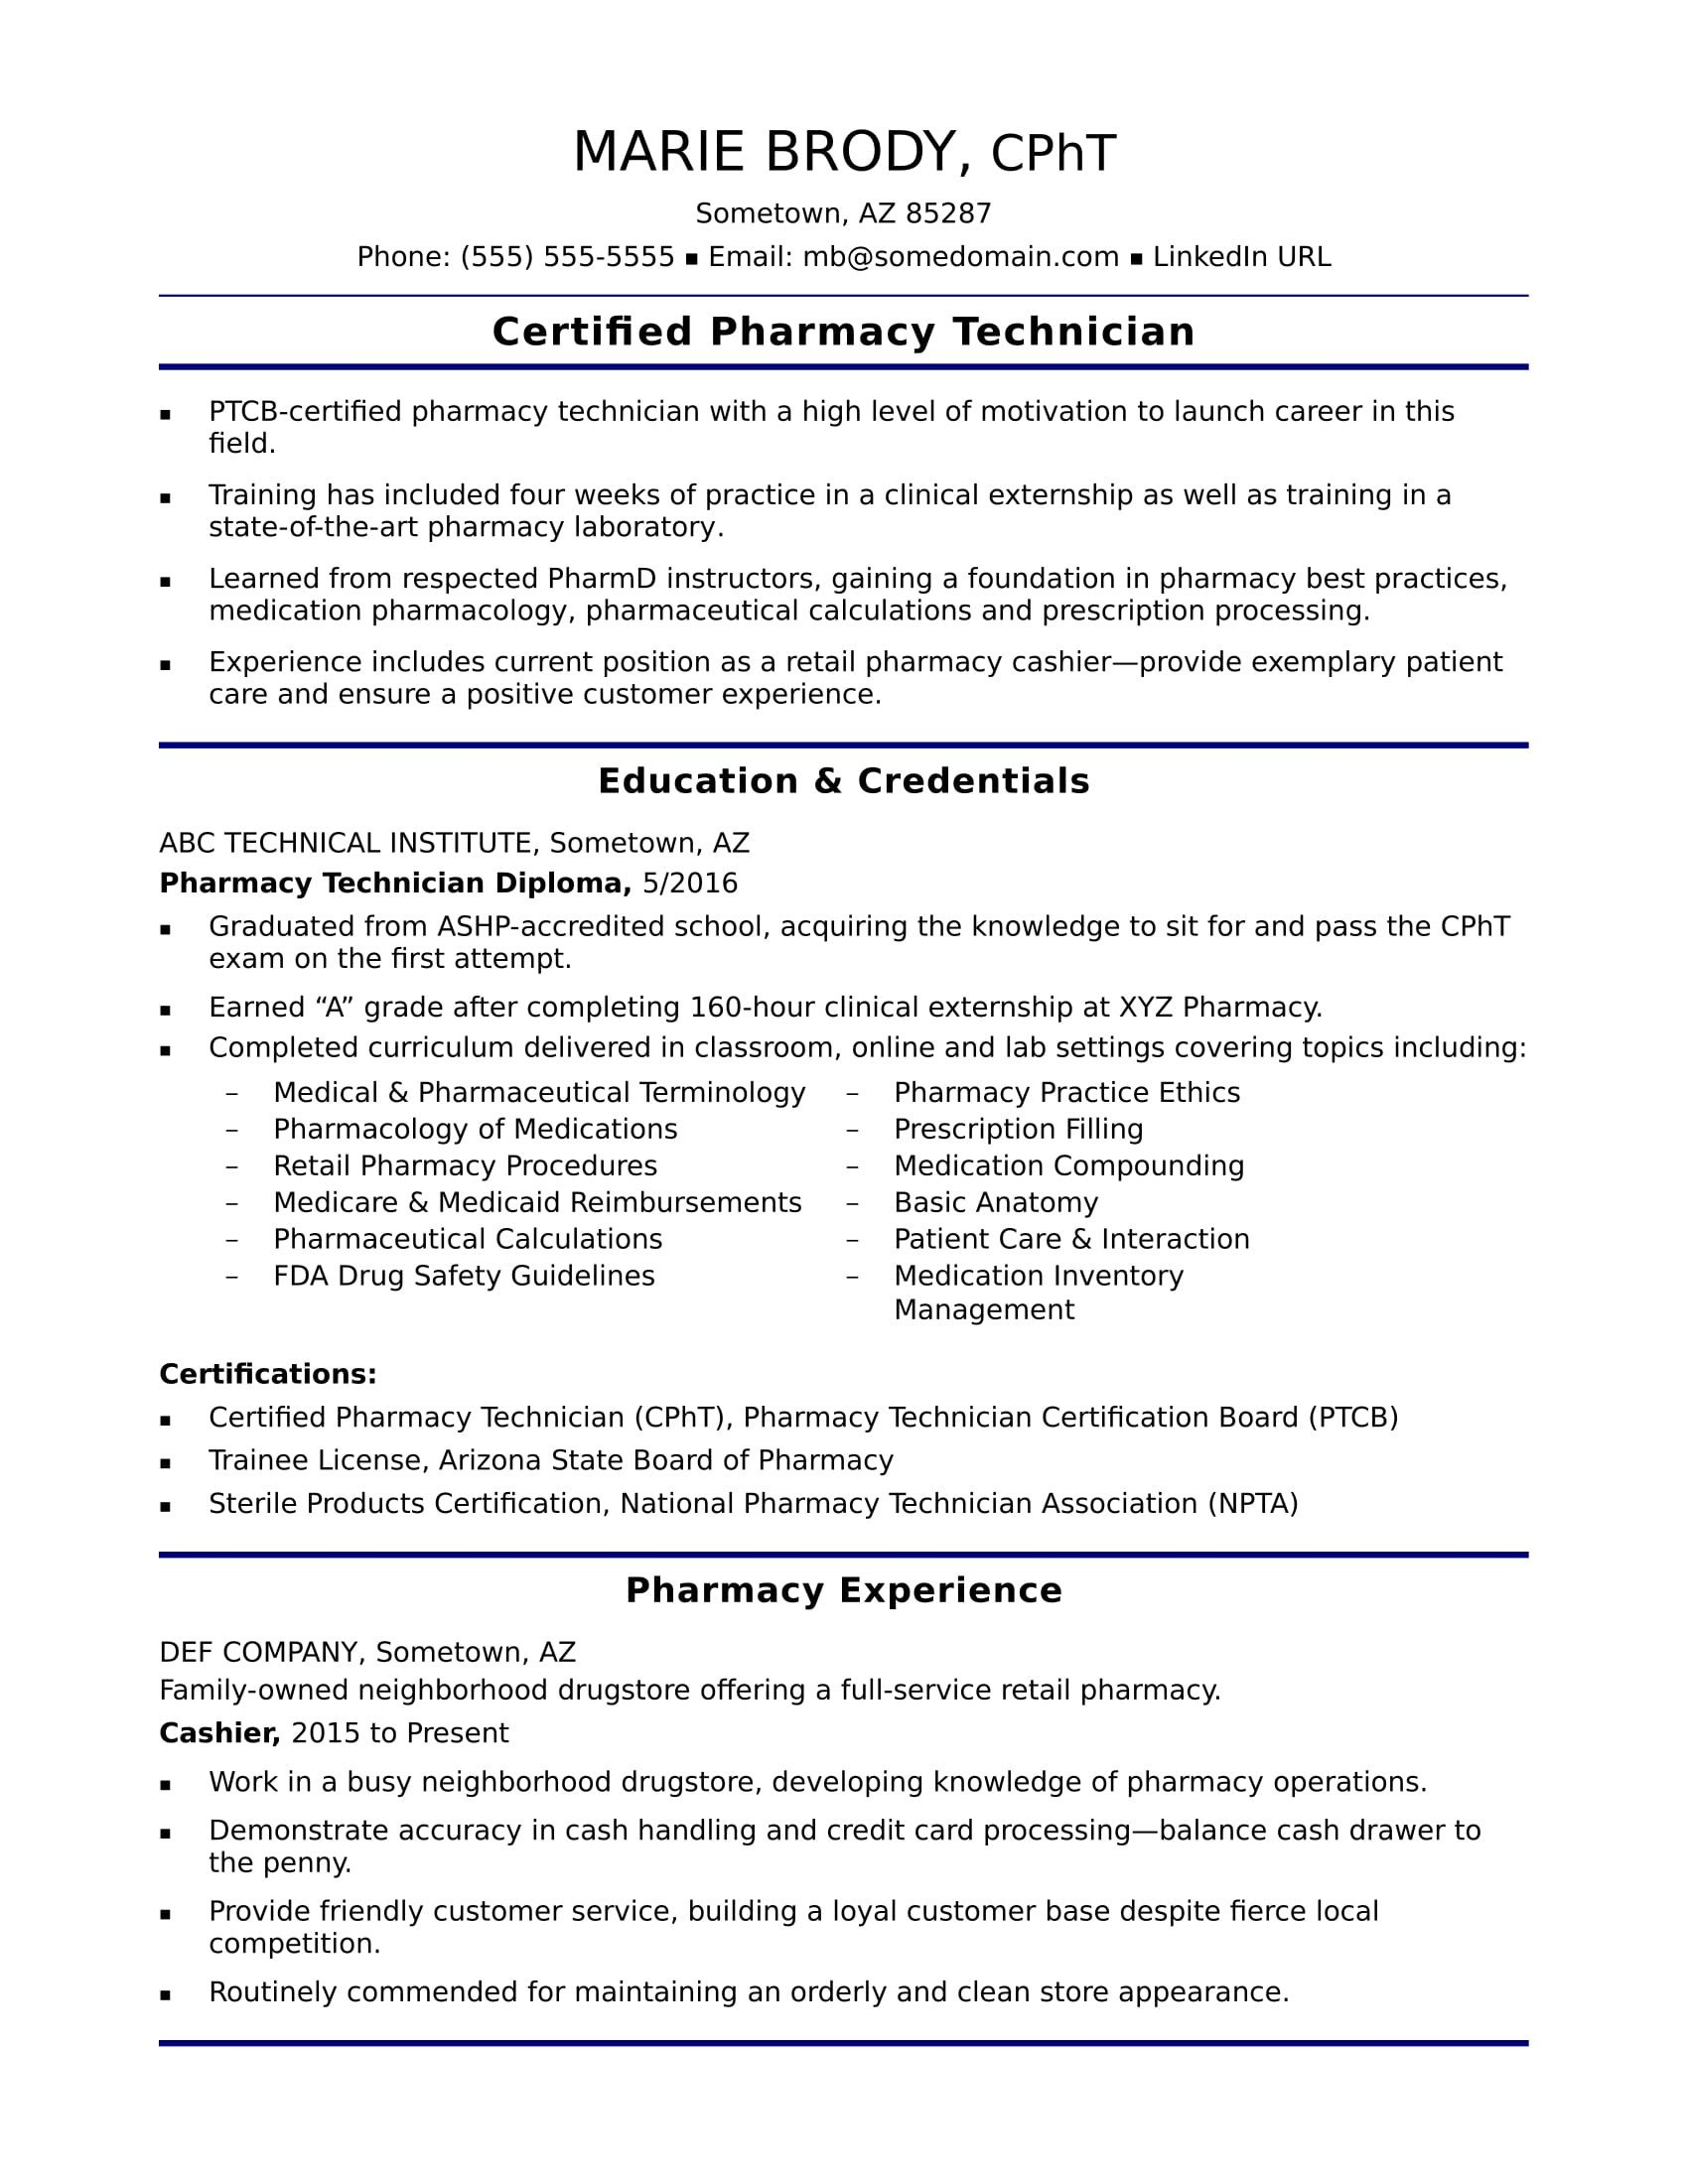 Pharmacy Technician Resume Sample Entry Level Pharmacy Technician Resume Sample